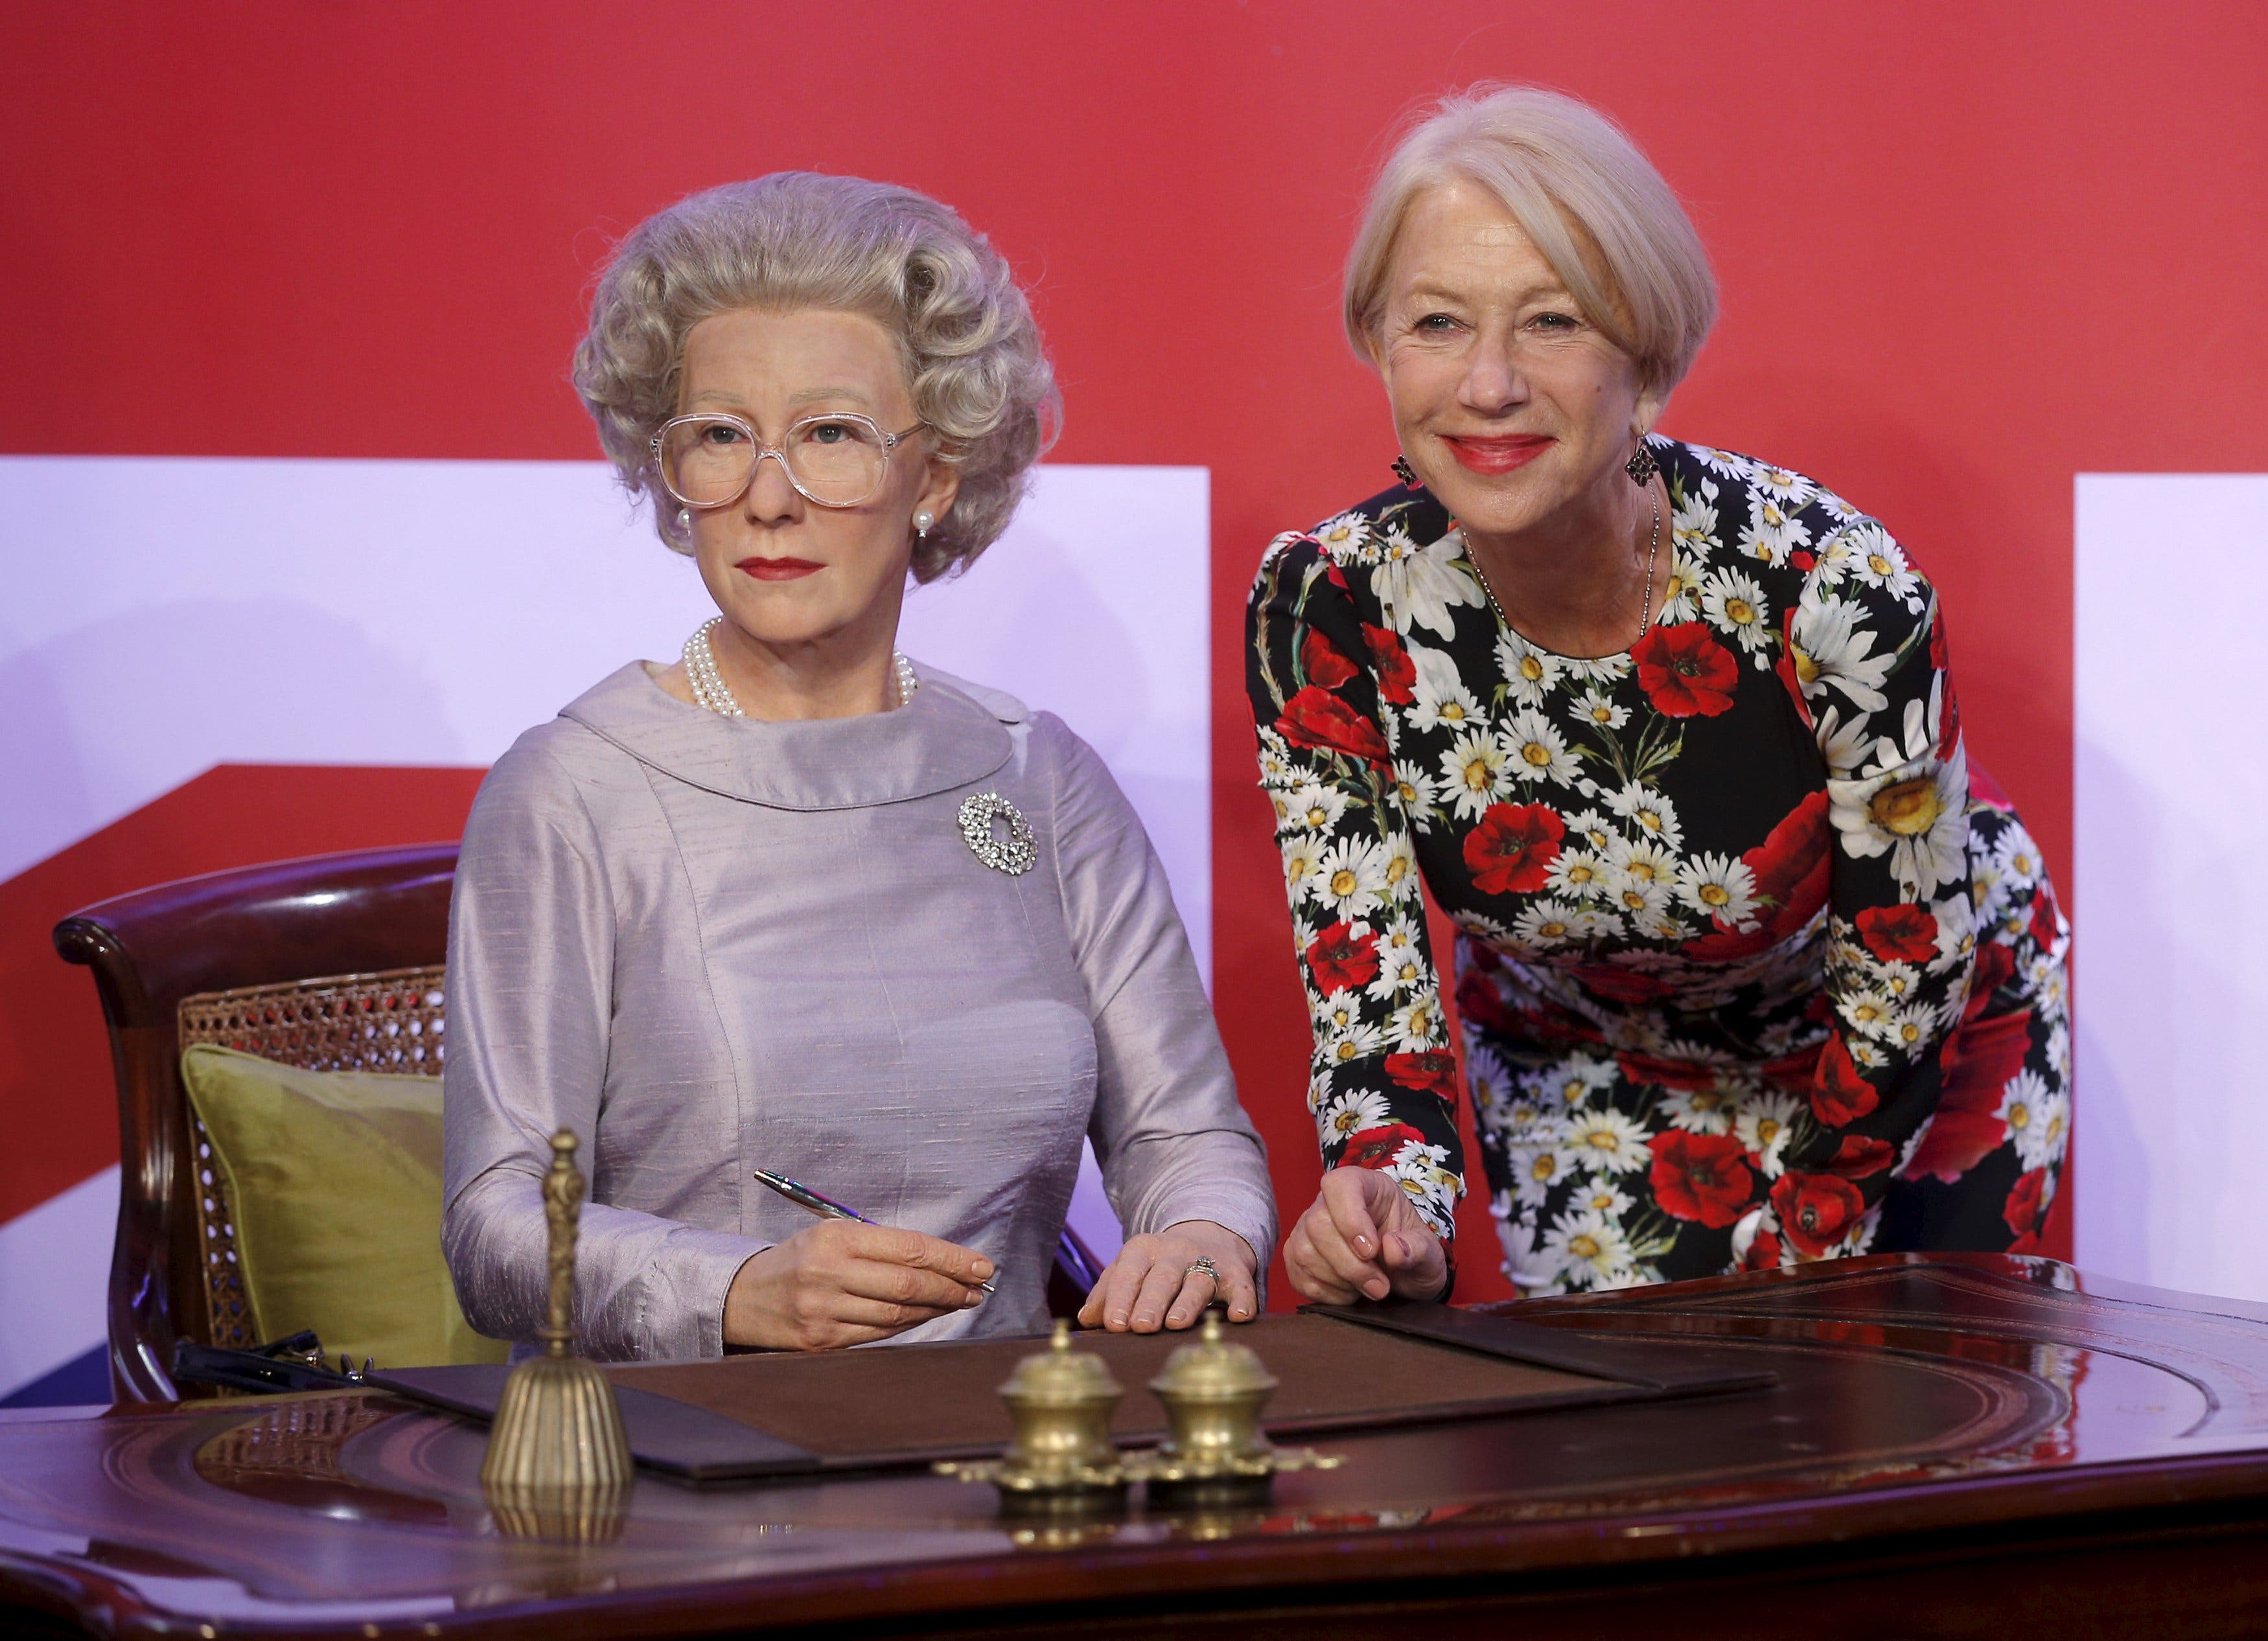 Helen Mirren Fakes intended for spot the fake!' mirren meets herself in triplicate wax works - al